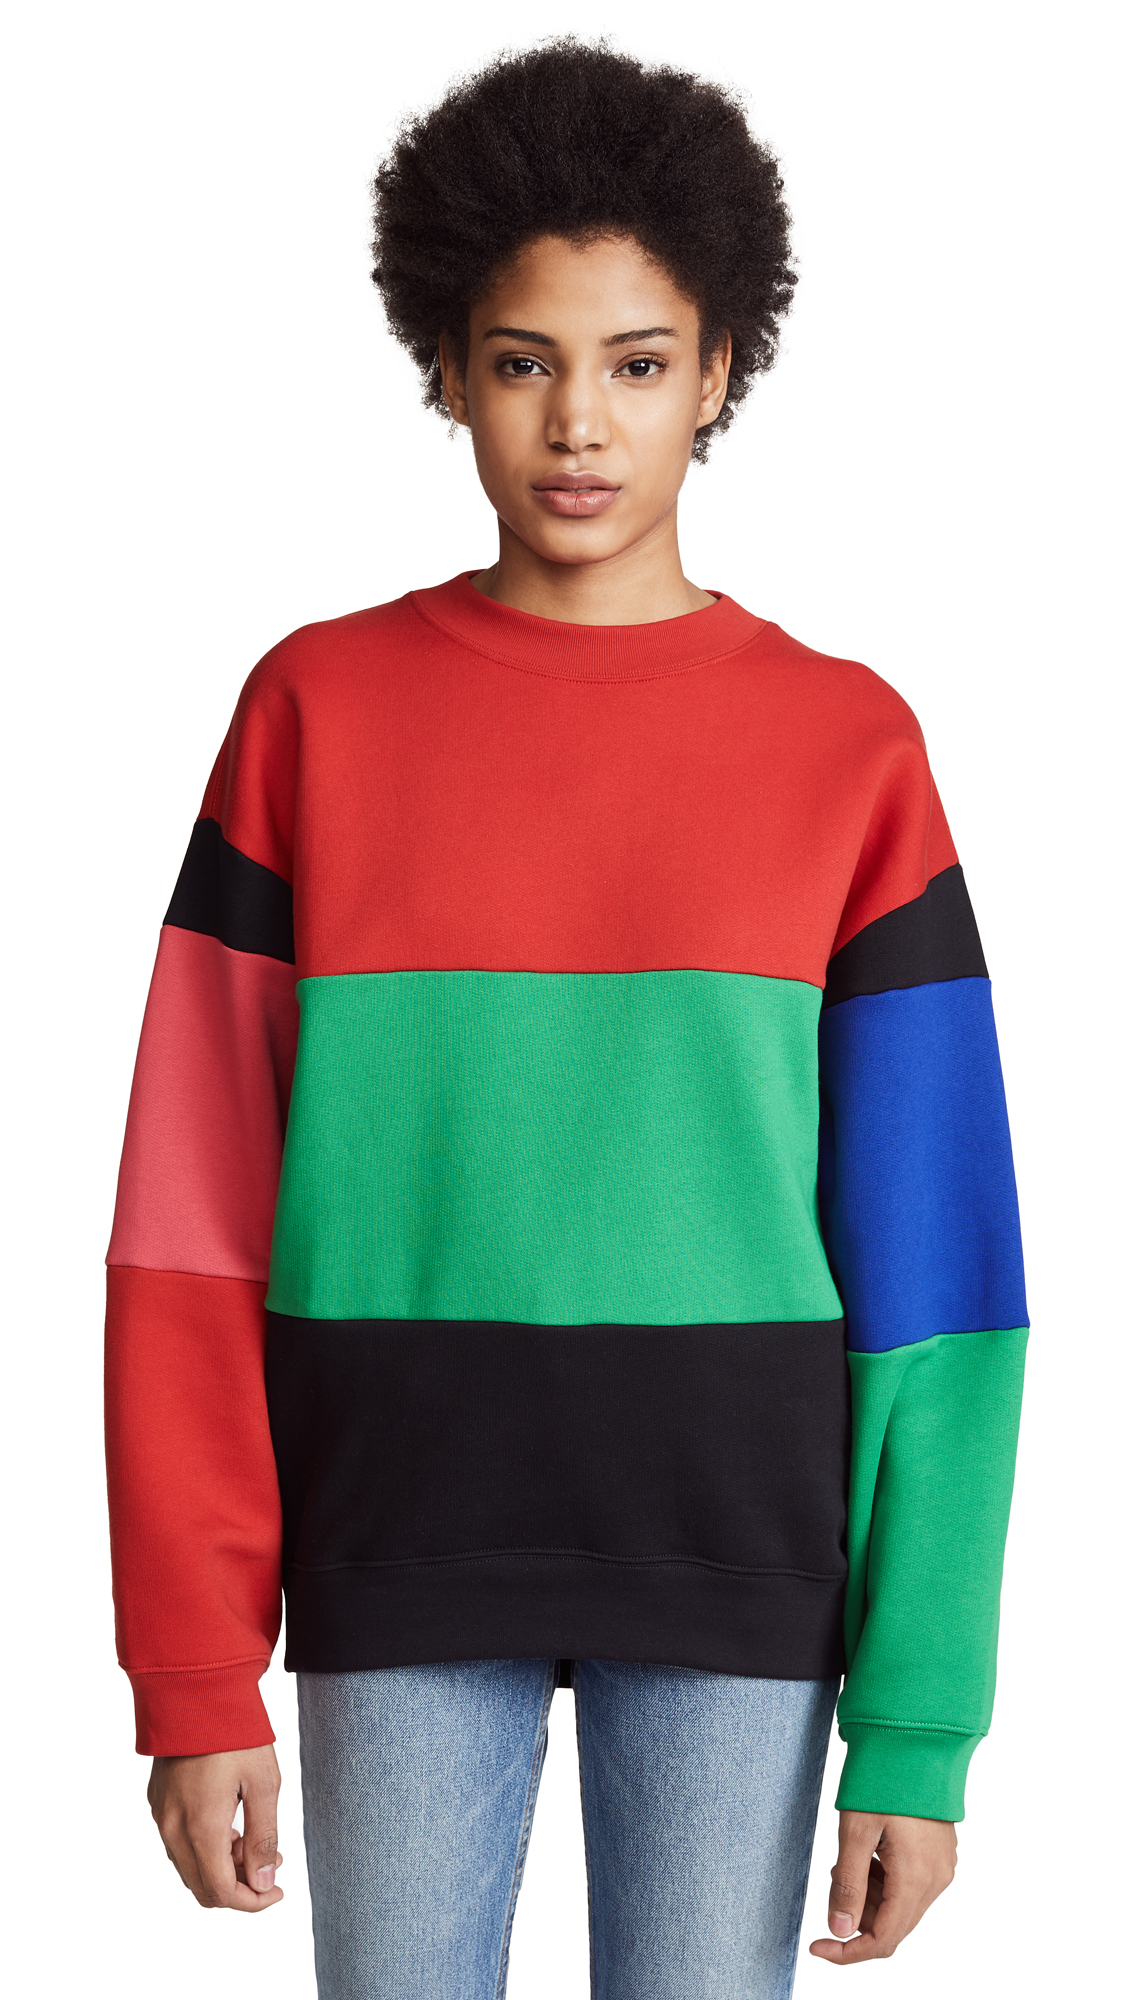 Acne Studios Fate Sweatshirt - Red/Green/Black/Blue/Pink